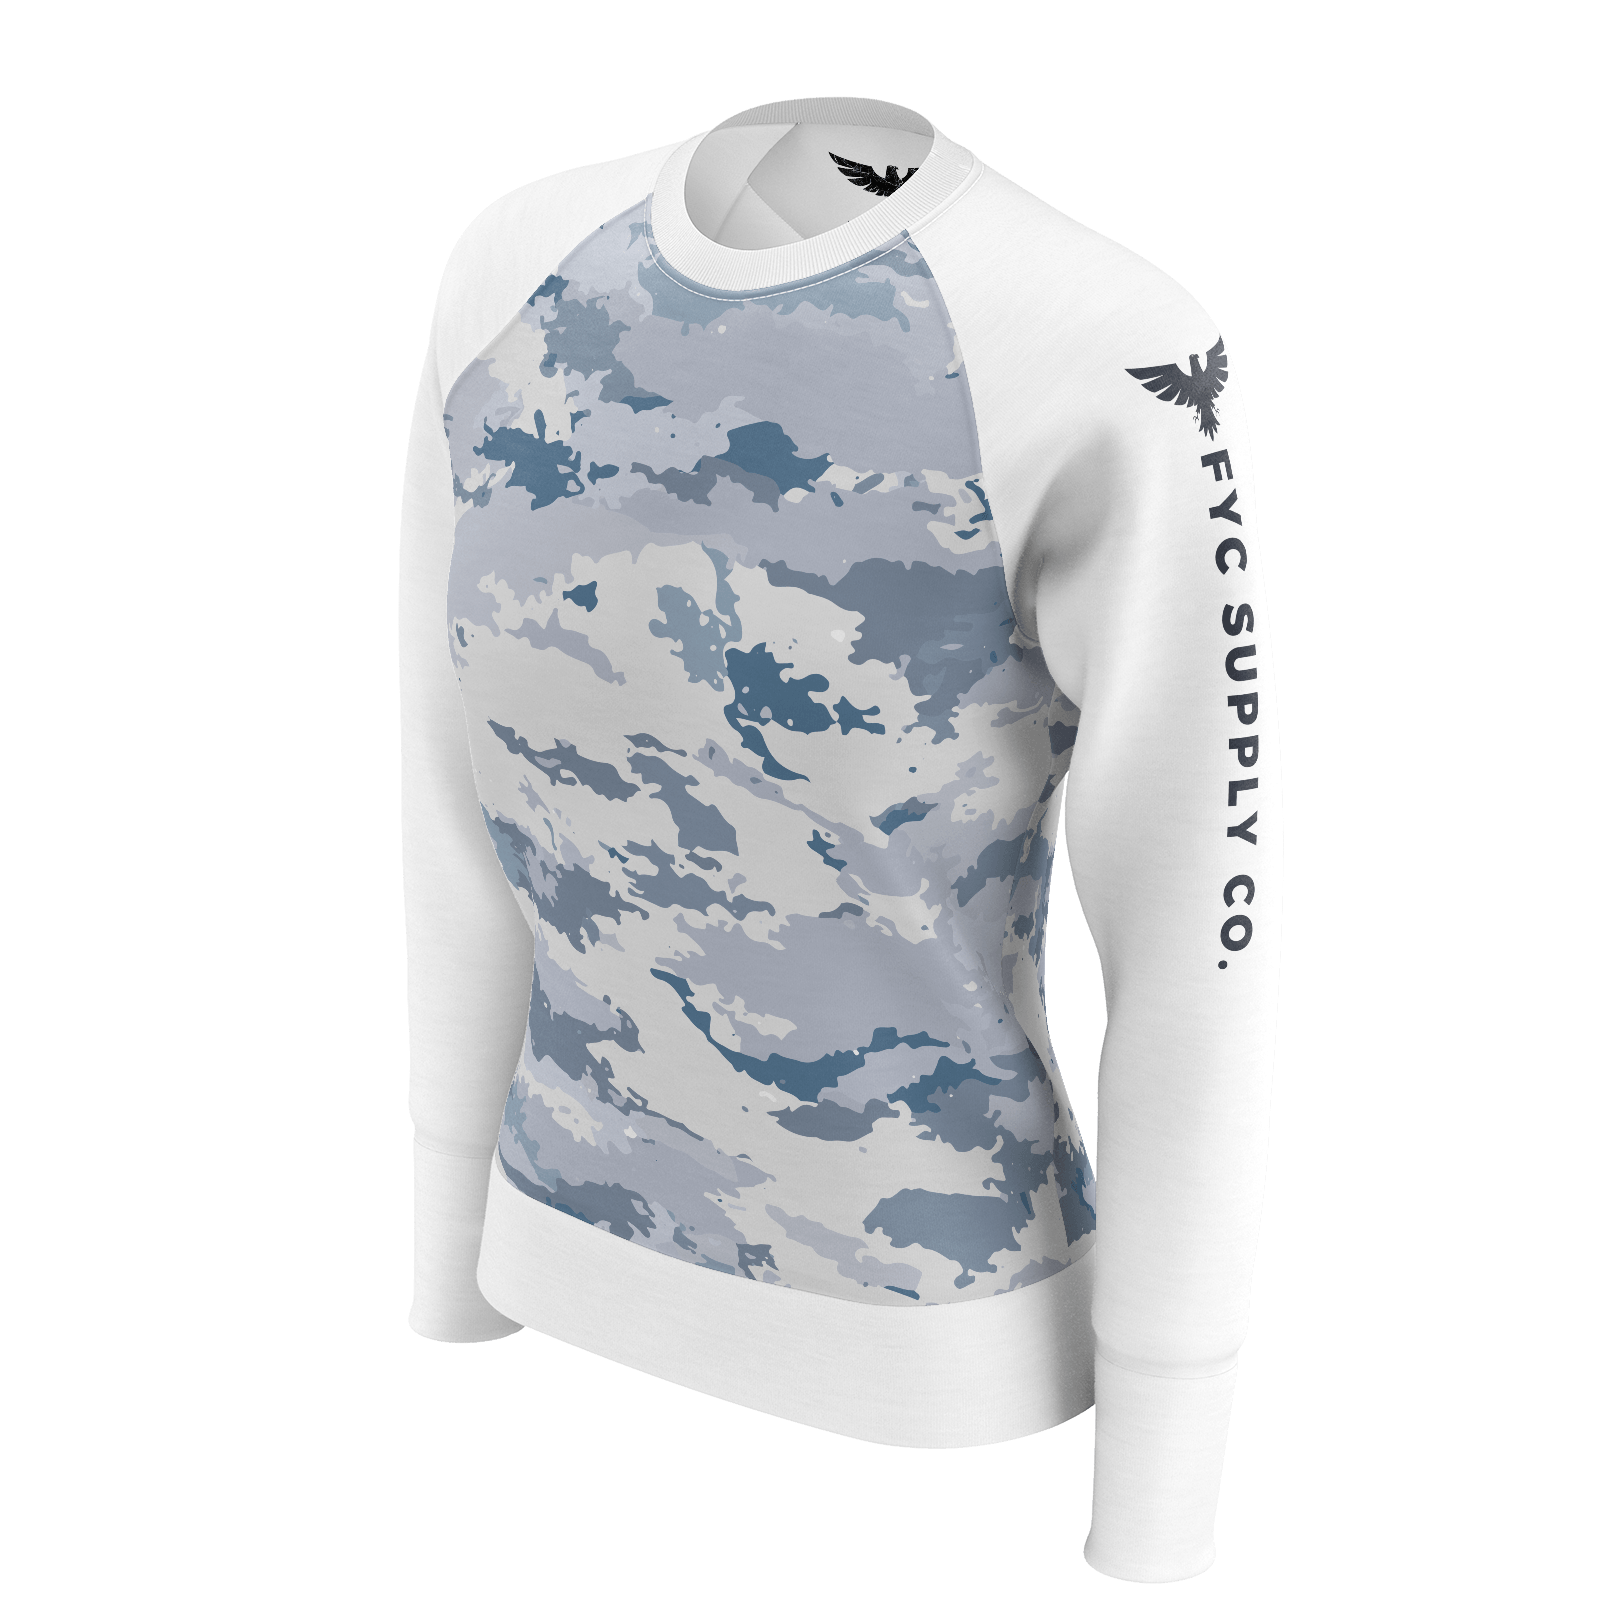 Women's Supply Co. Coast Camo White Sustainable Raglan Sweatshirt - Find Your Coast Supply Co.